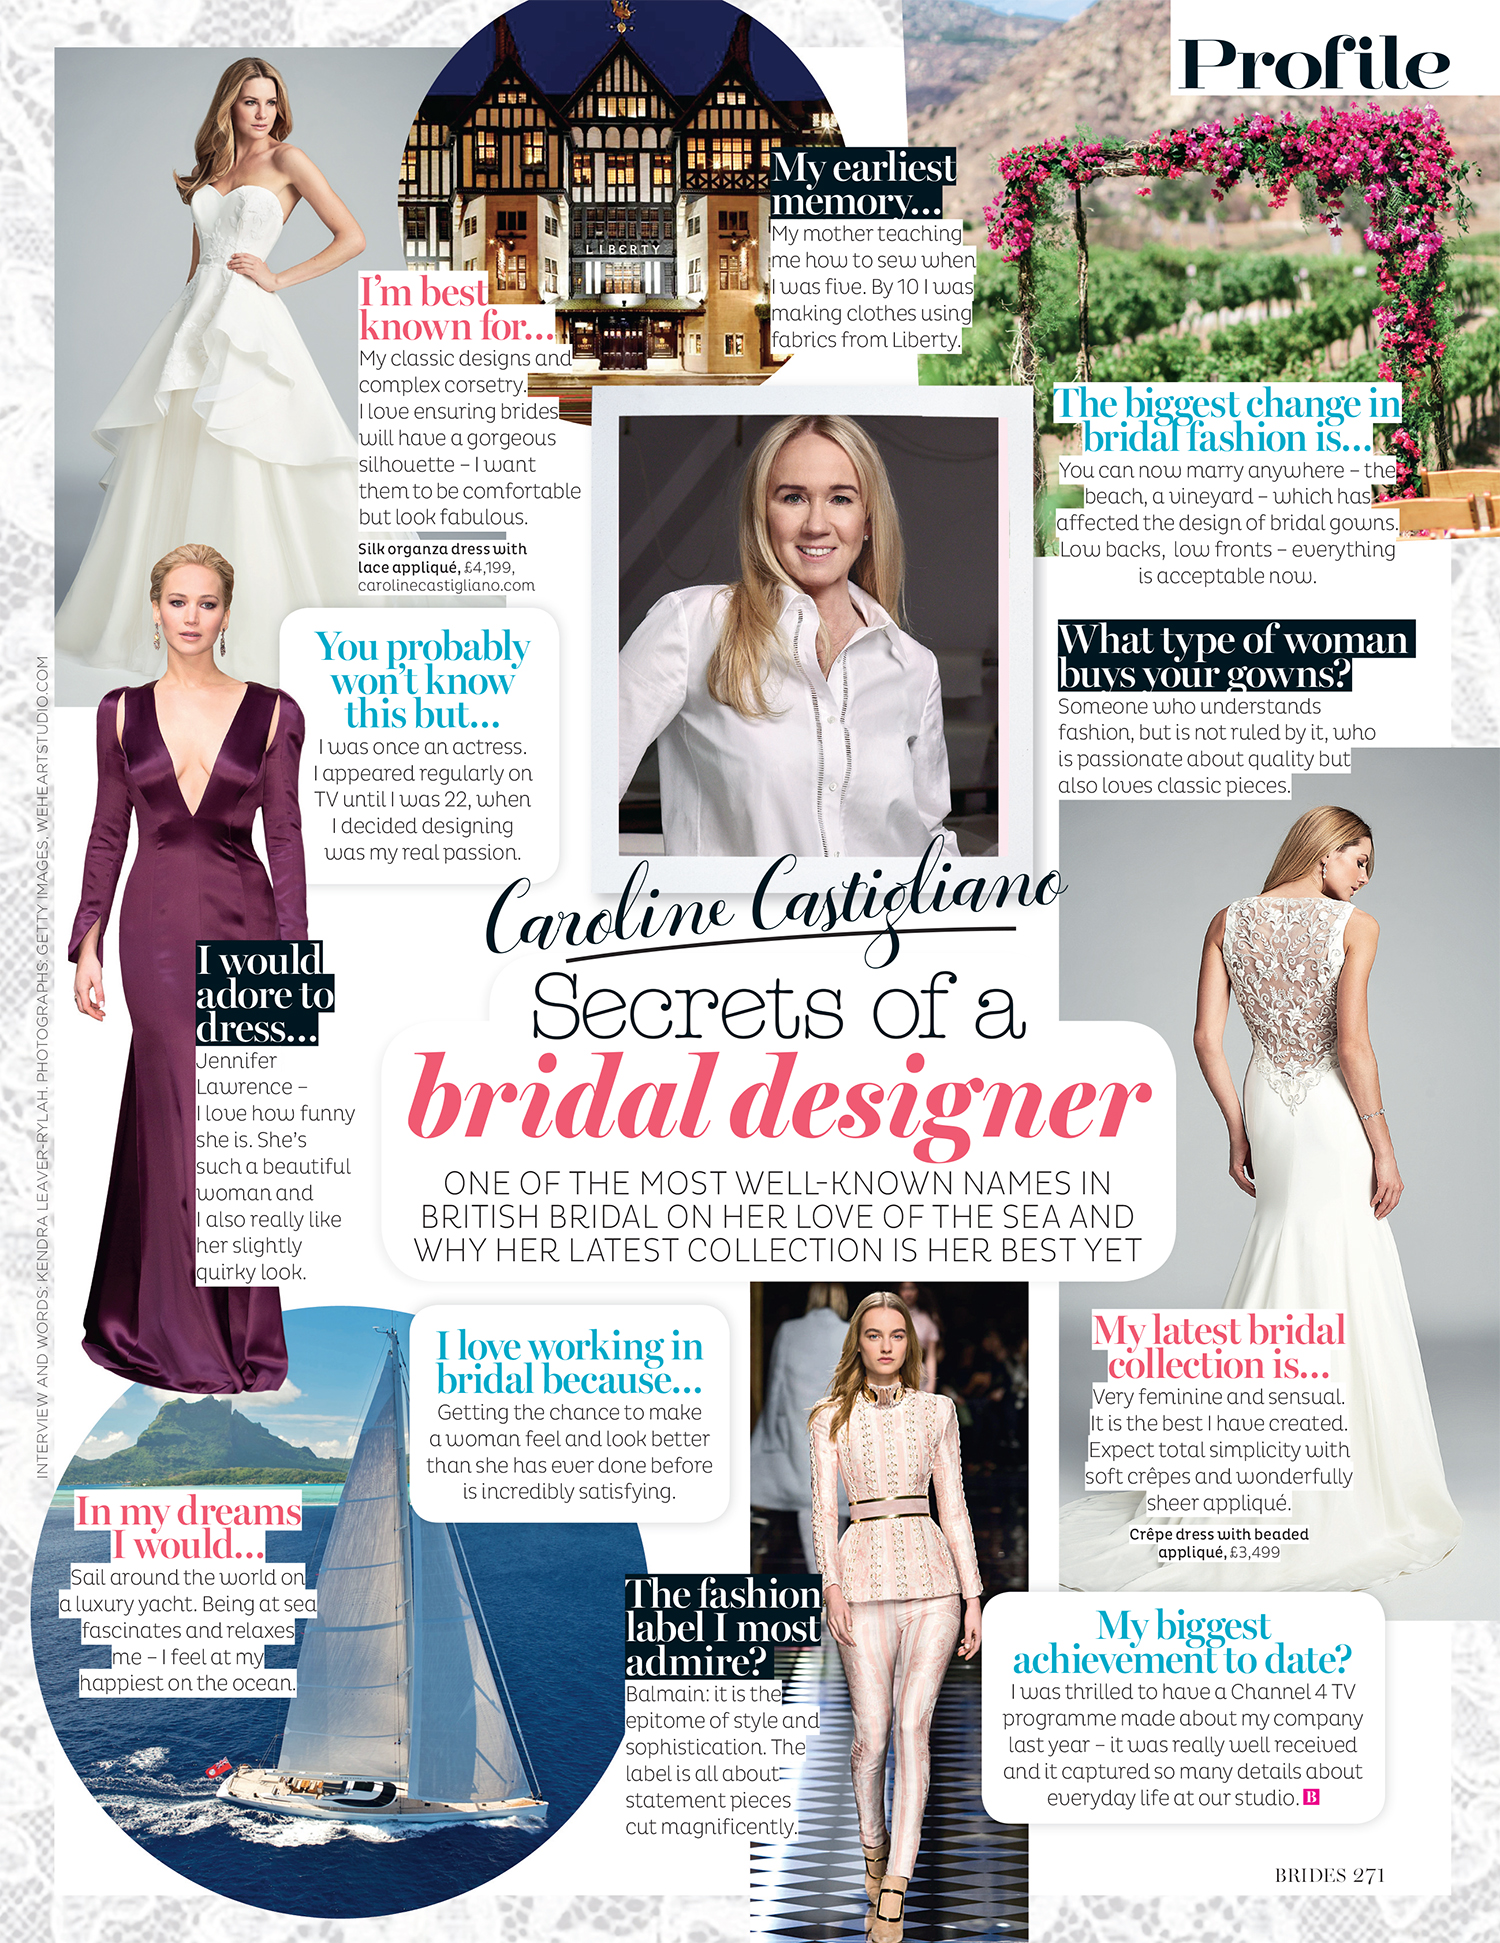 Designer Profile designer wedding dresses by Caroline Castigliano